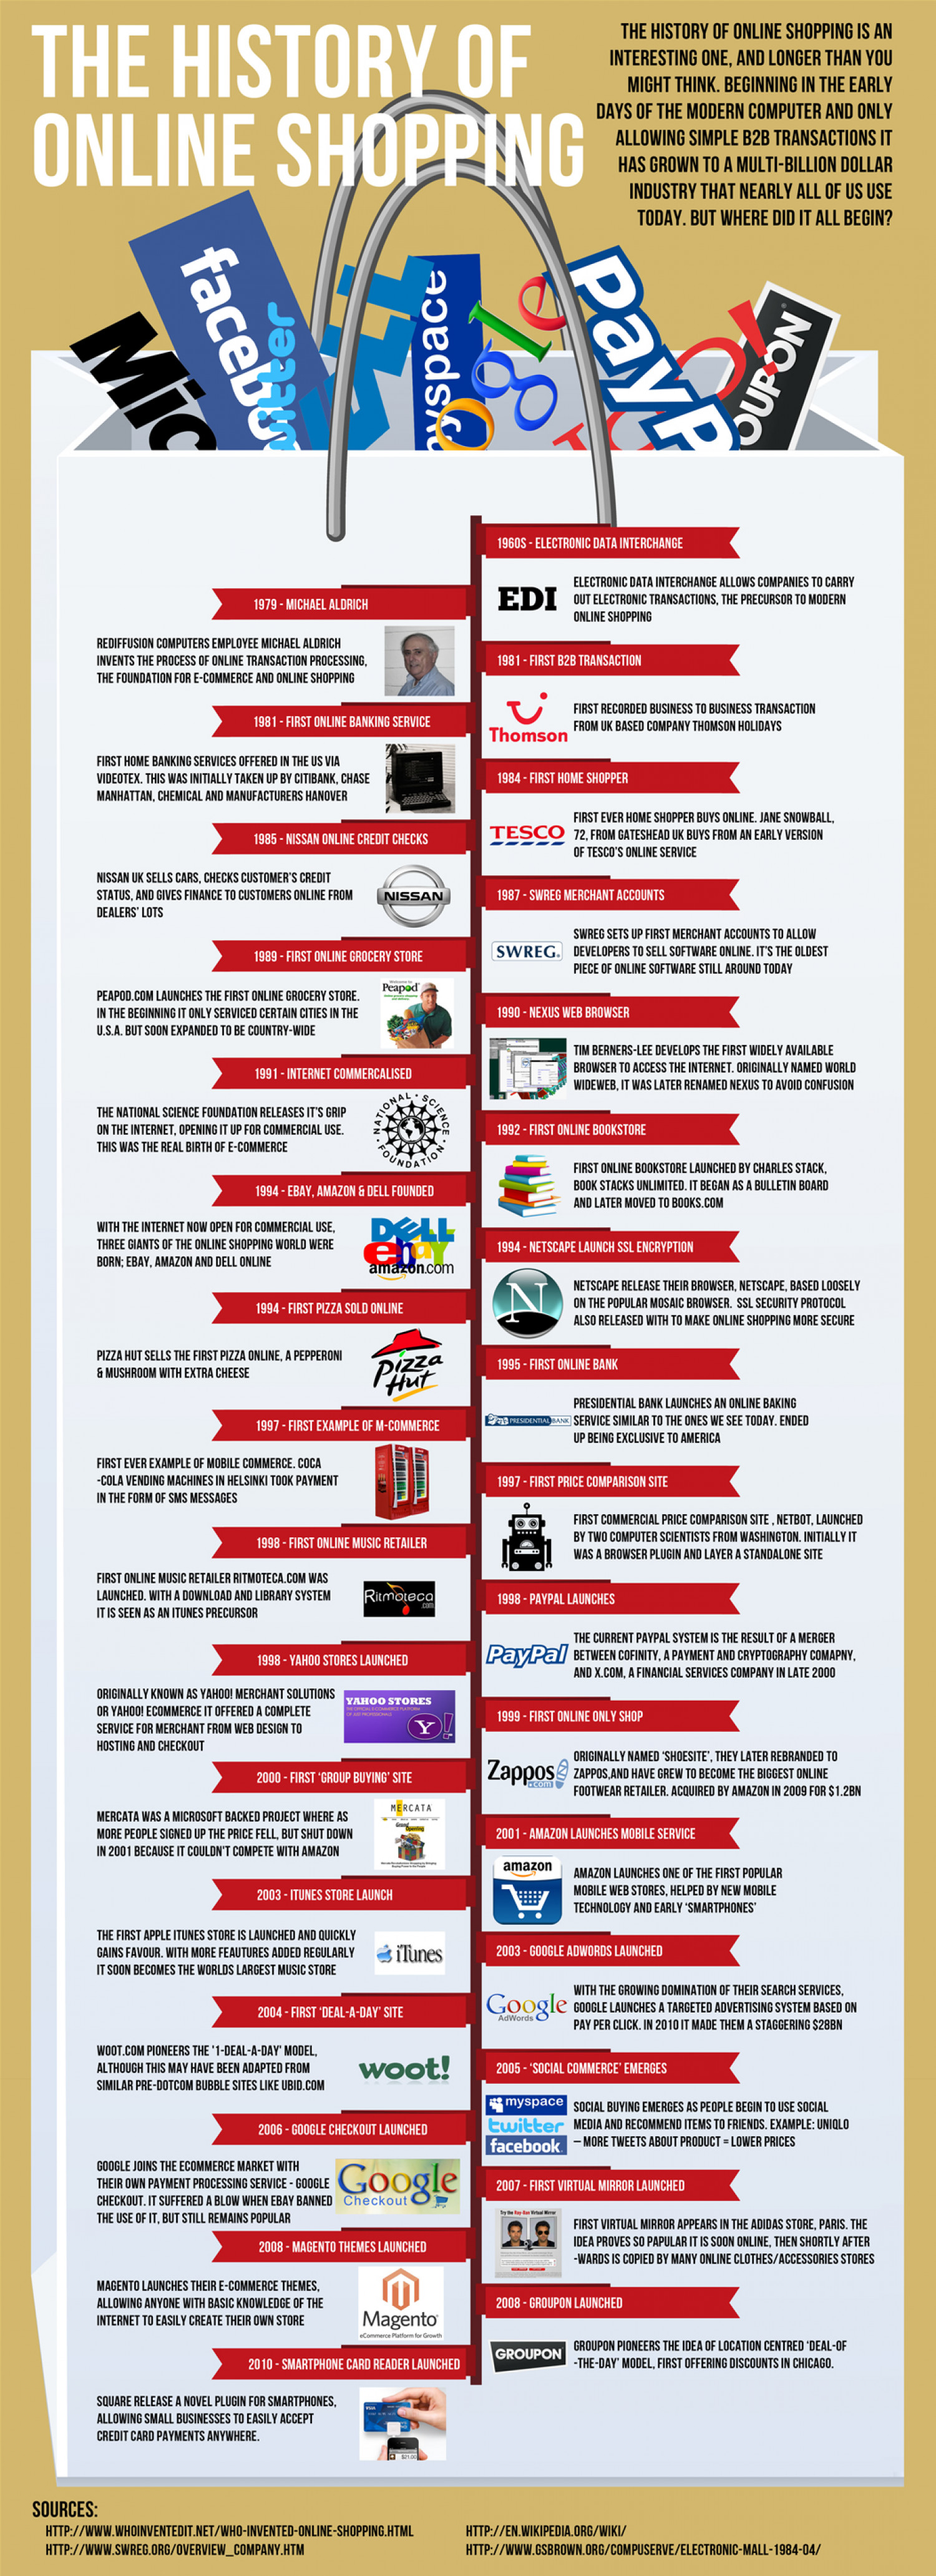 The History of Online Shopping Infographic